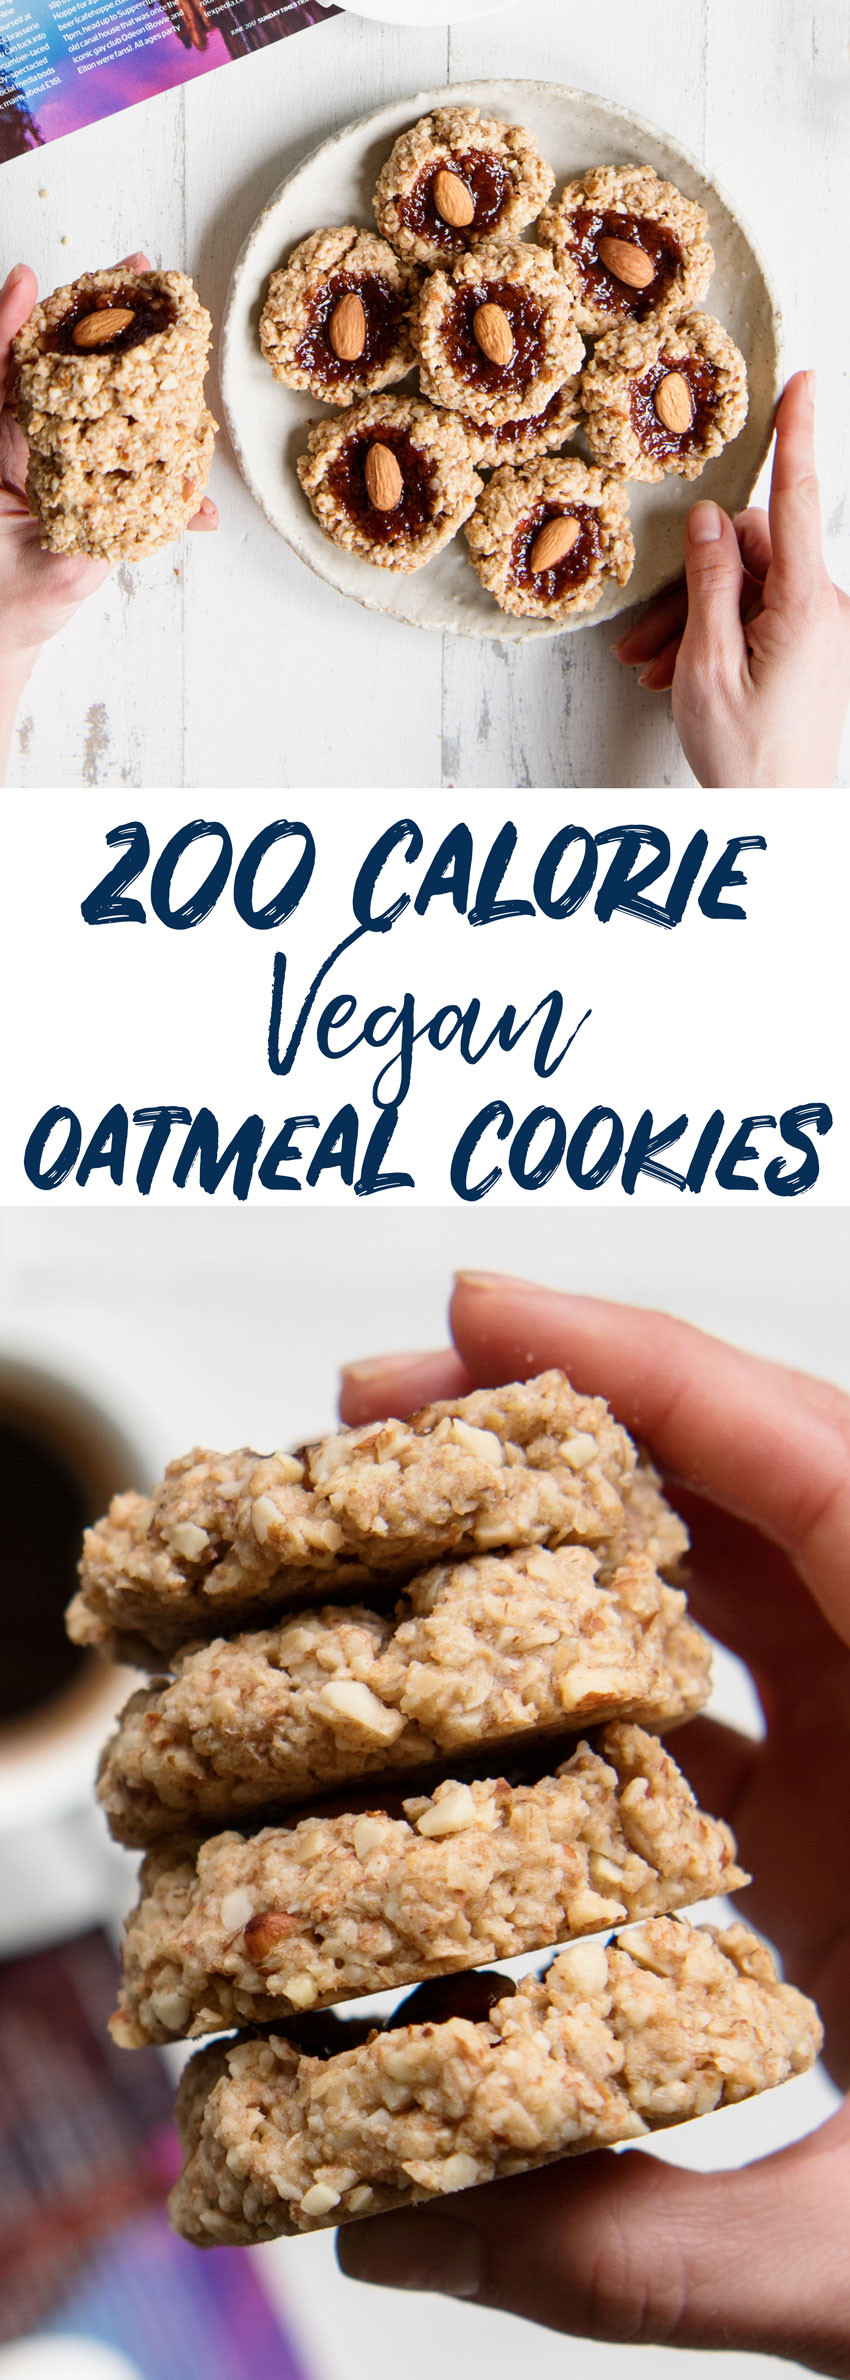 Vegan Cookie Recipes  Perfectly Chewy Vegan Oatmeal Cookies